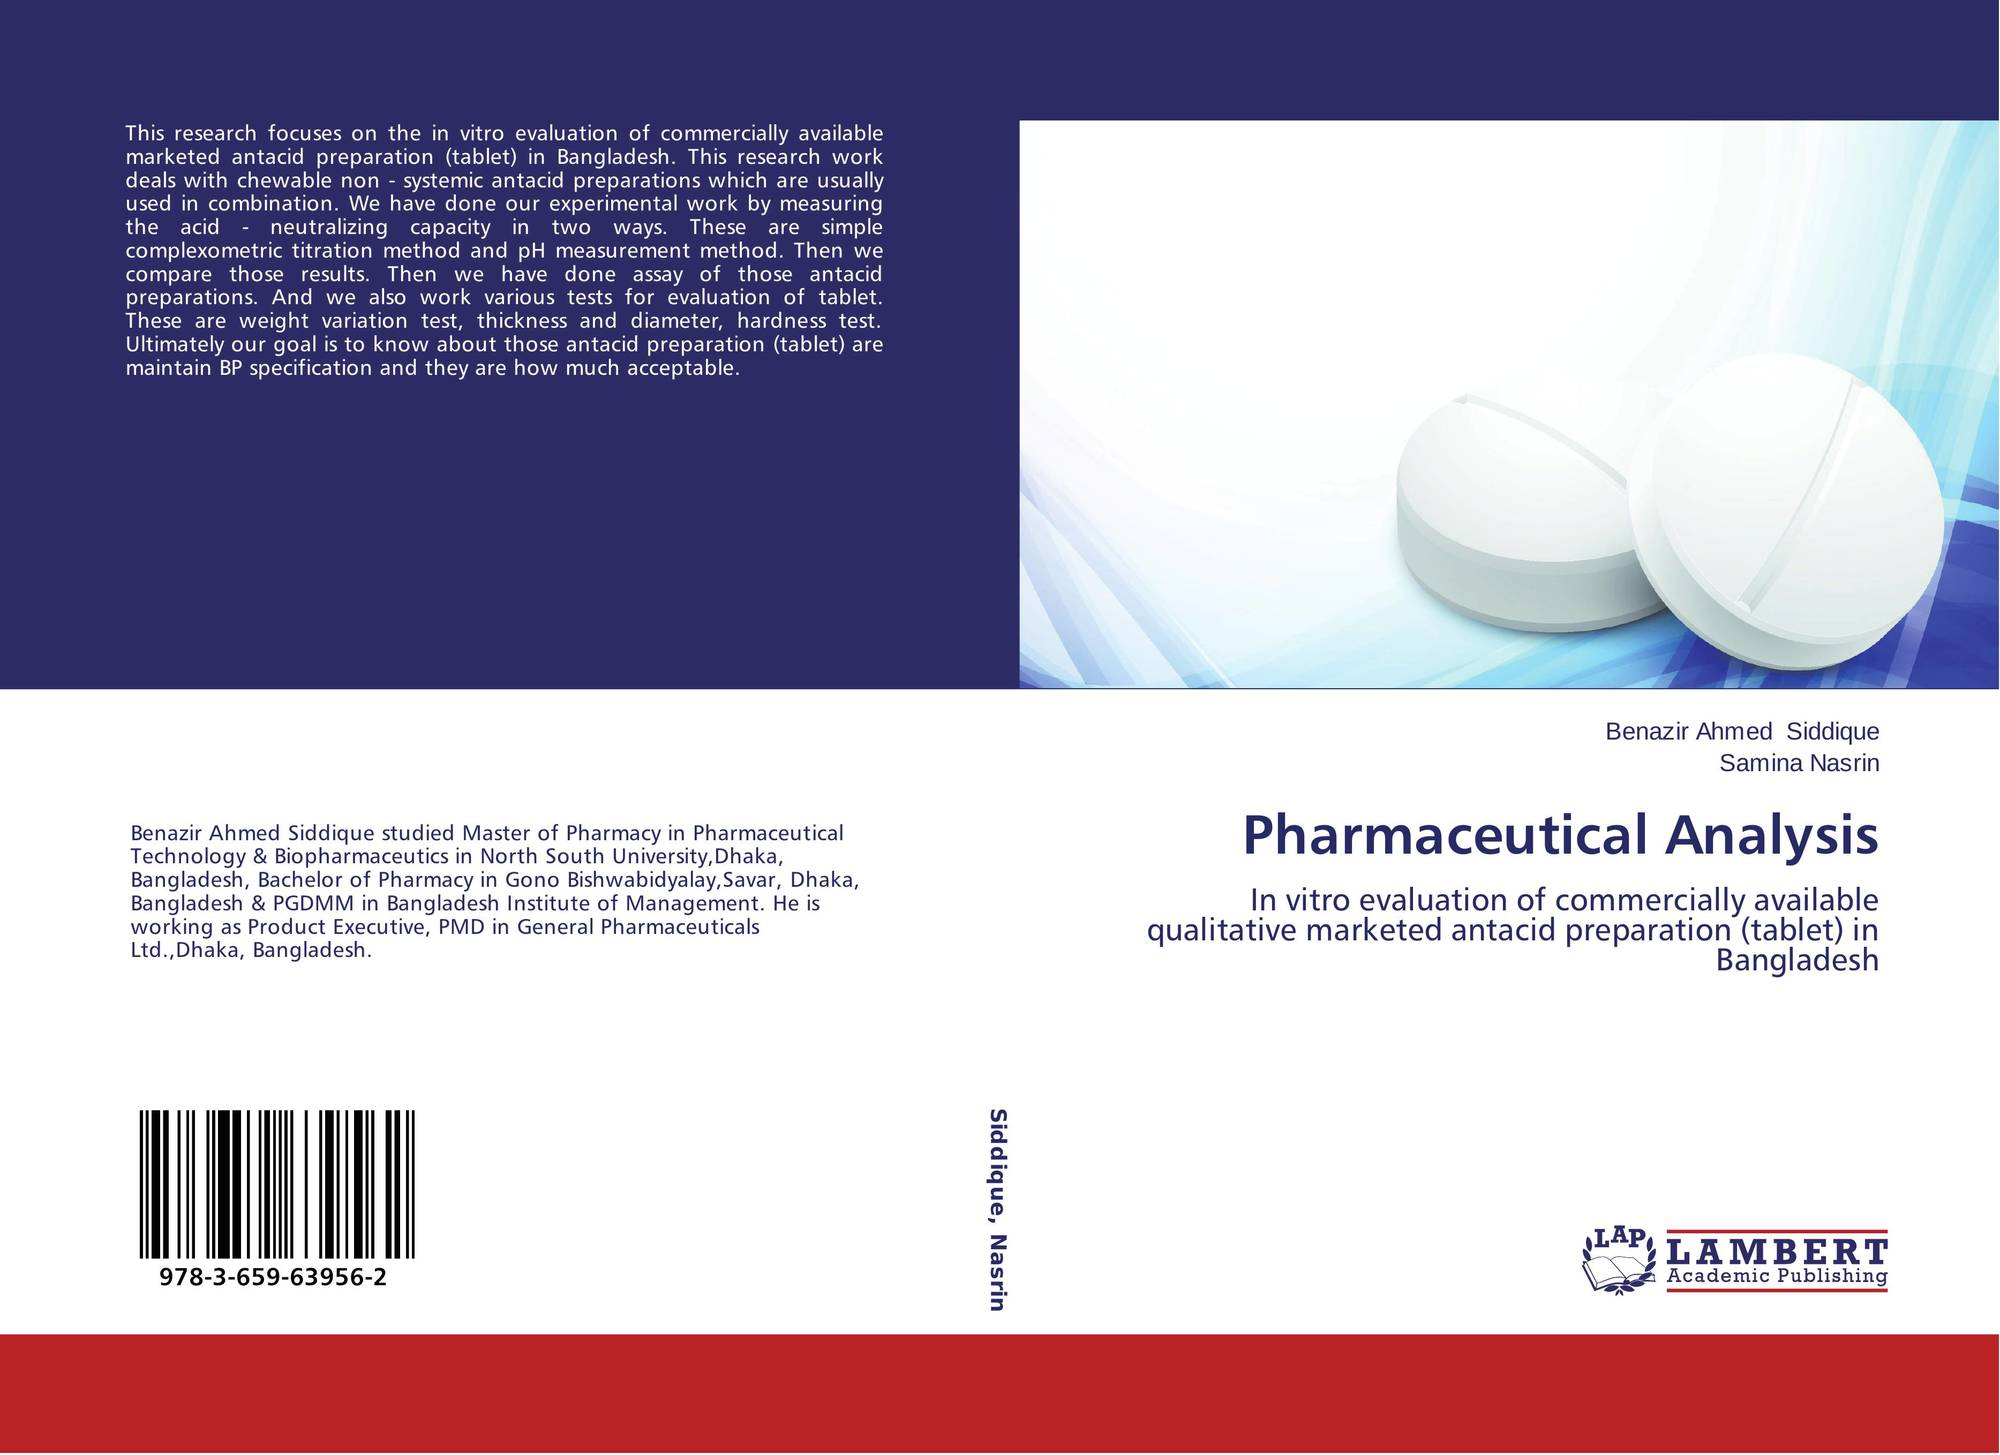 pharmaceutical analysis in bangladesh Top 50 pharmaceutical company: bangladesh pharma market according to recently published bangladesh pharmaceutical index, 3q'2011, bangladesh has a tk 8,000 cr market, which is growing at 25% rate healthcare pharmaceutical ltd made a great jump to 12th position.